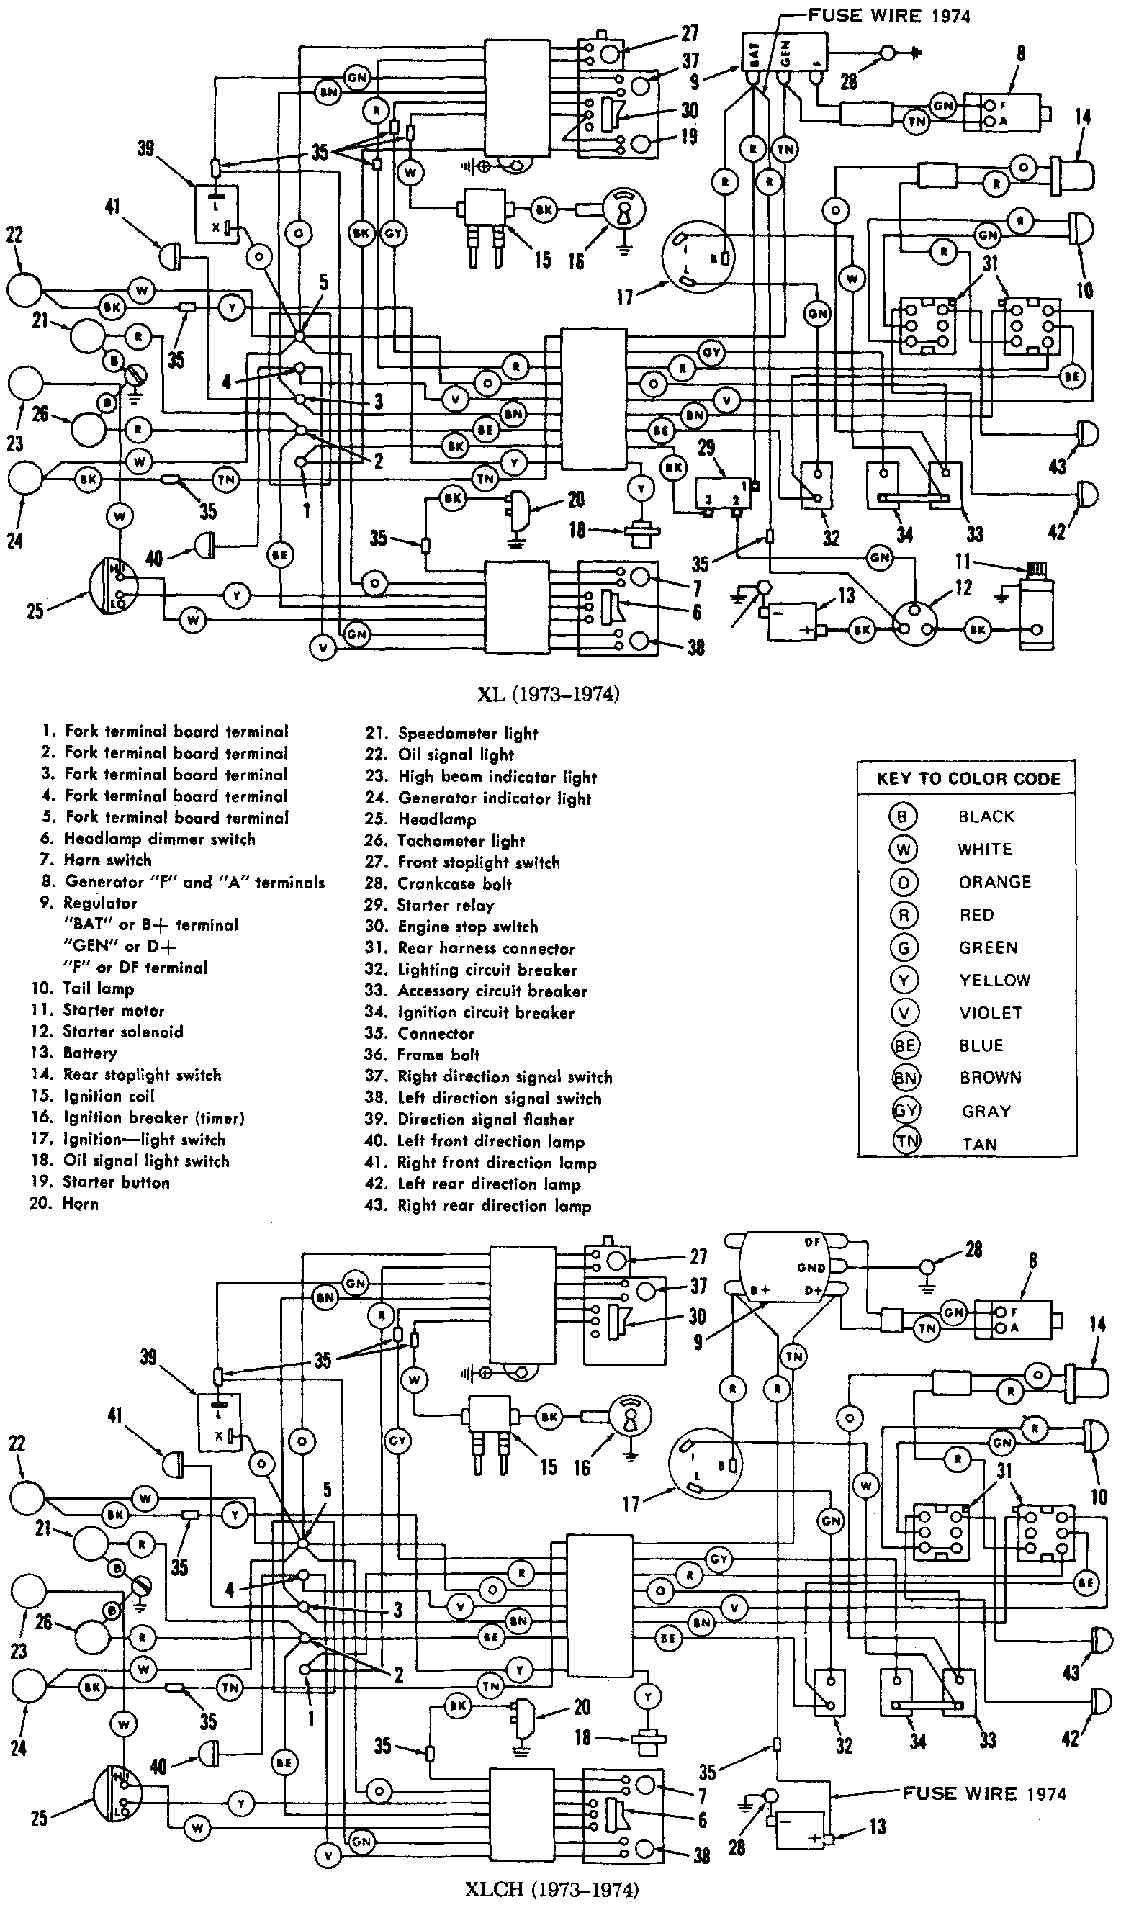 [SCHEMATICS_4LK]  HARLEY DAVIDSON - Motorcycles Manual PDF, Wiring Diagram & Fault Codes | Wiring Diagram For A 1975 Harley Davidson Flh |  | Motorcycle Manuals News